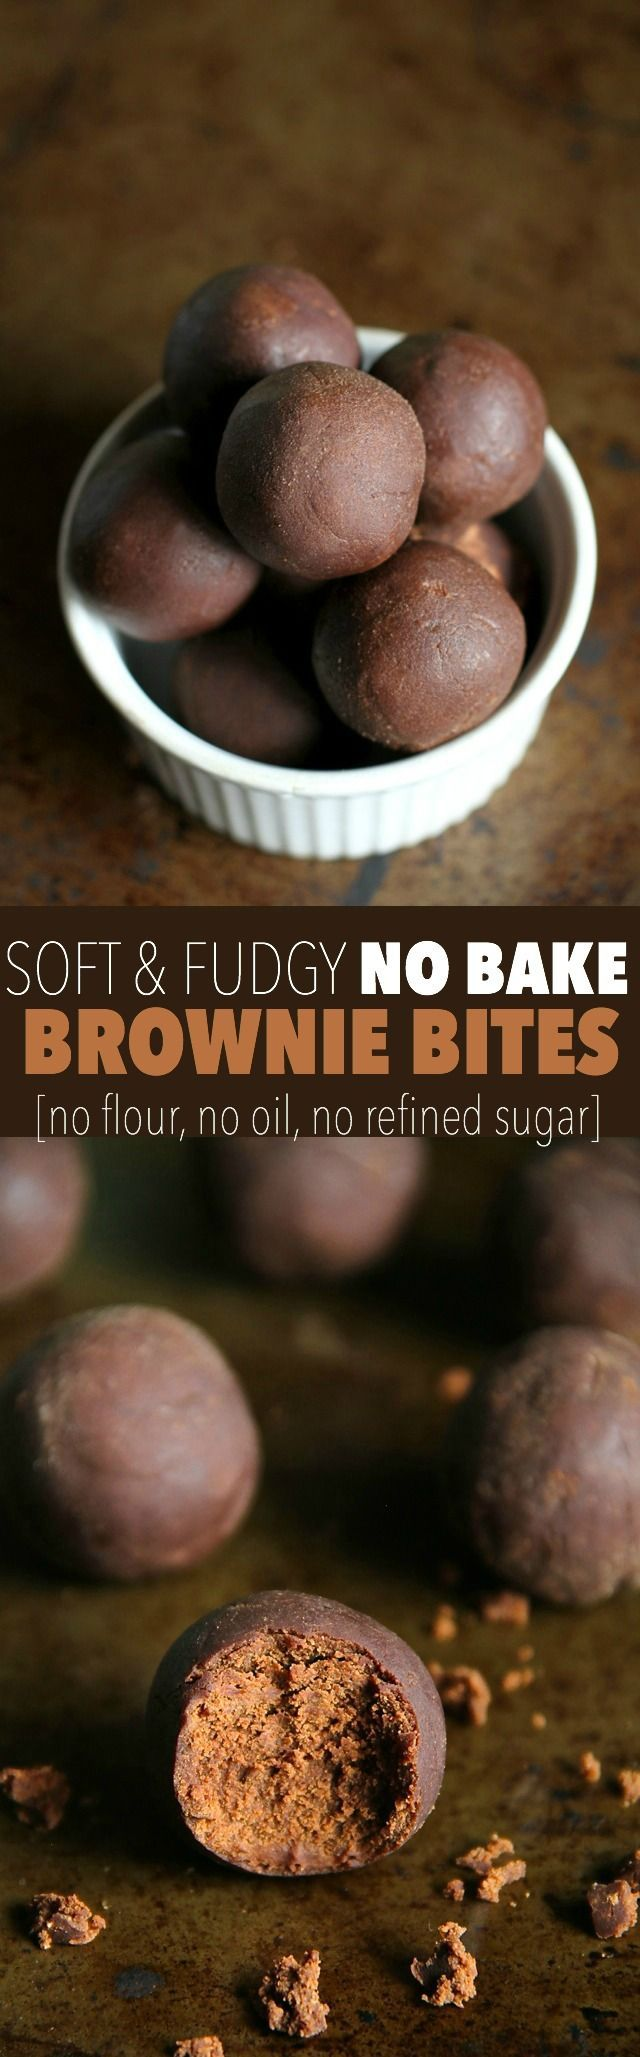 No Bake Brownie Bites -- these soft and fudgy bites taste just like a batch of soft-baked brownies, but are made without flour, oil, eggs, or refined sugar! || runningwithspoons.com #chocolate #brownies #vegan #glutenfree #snack